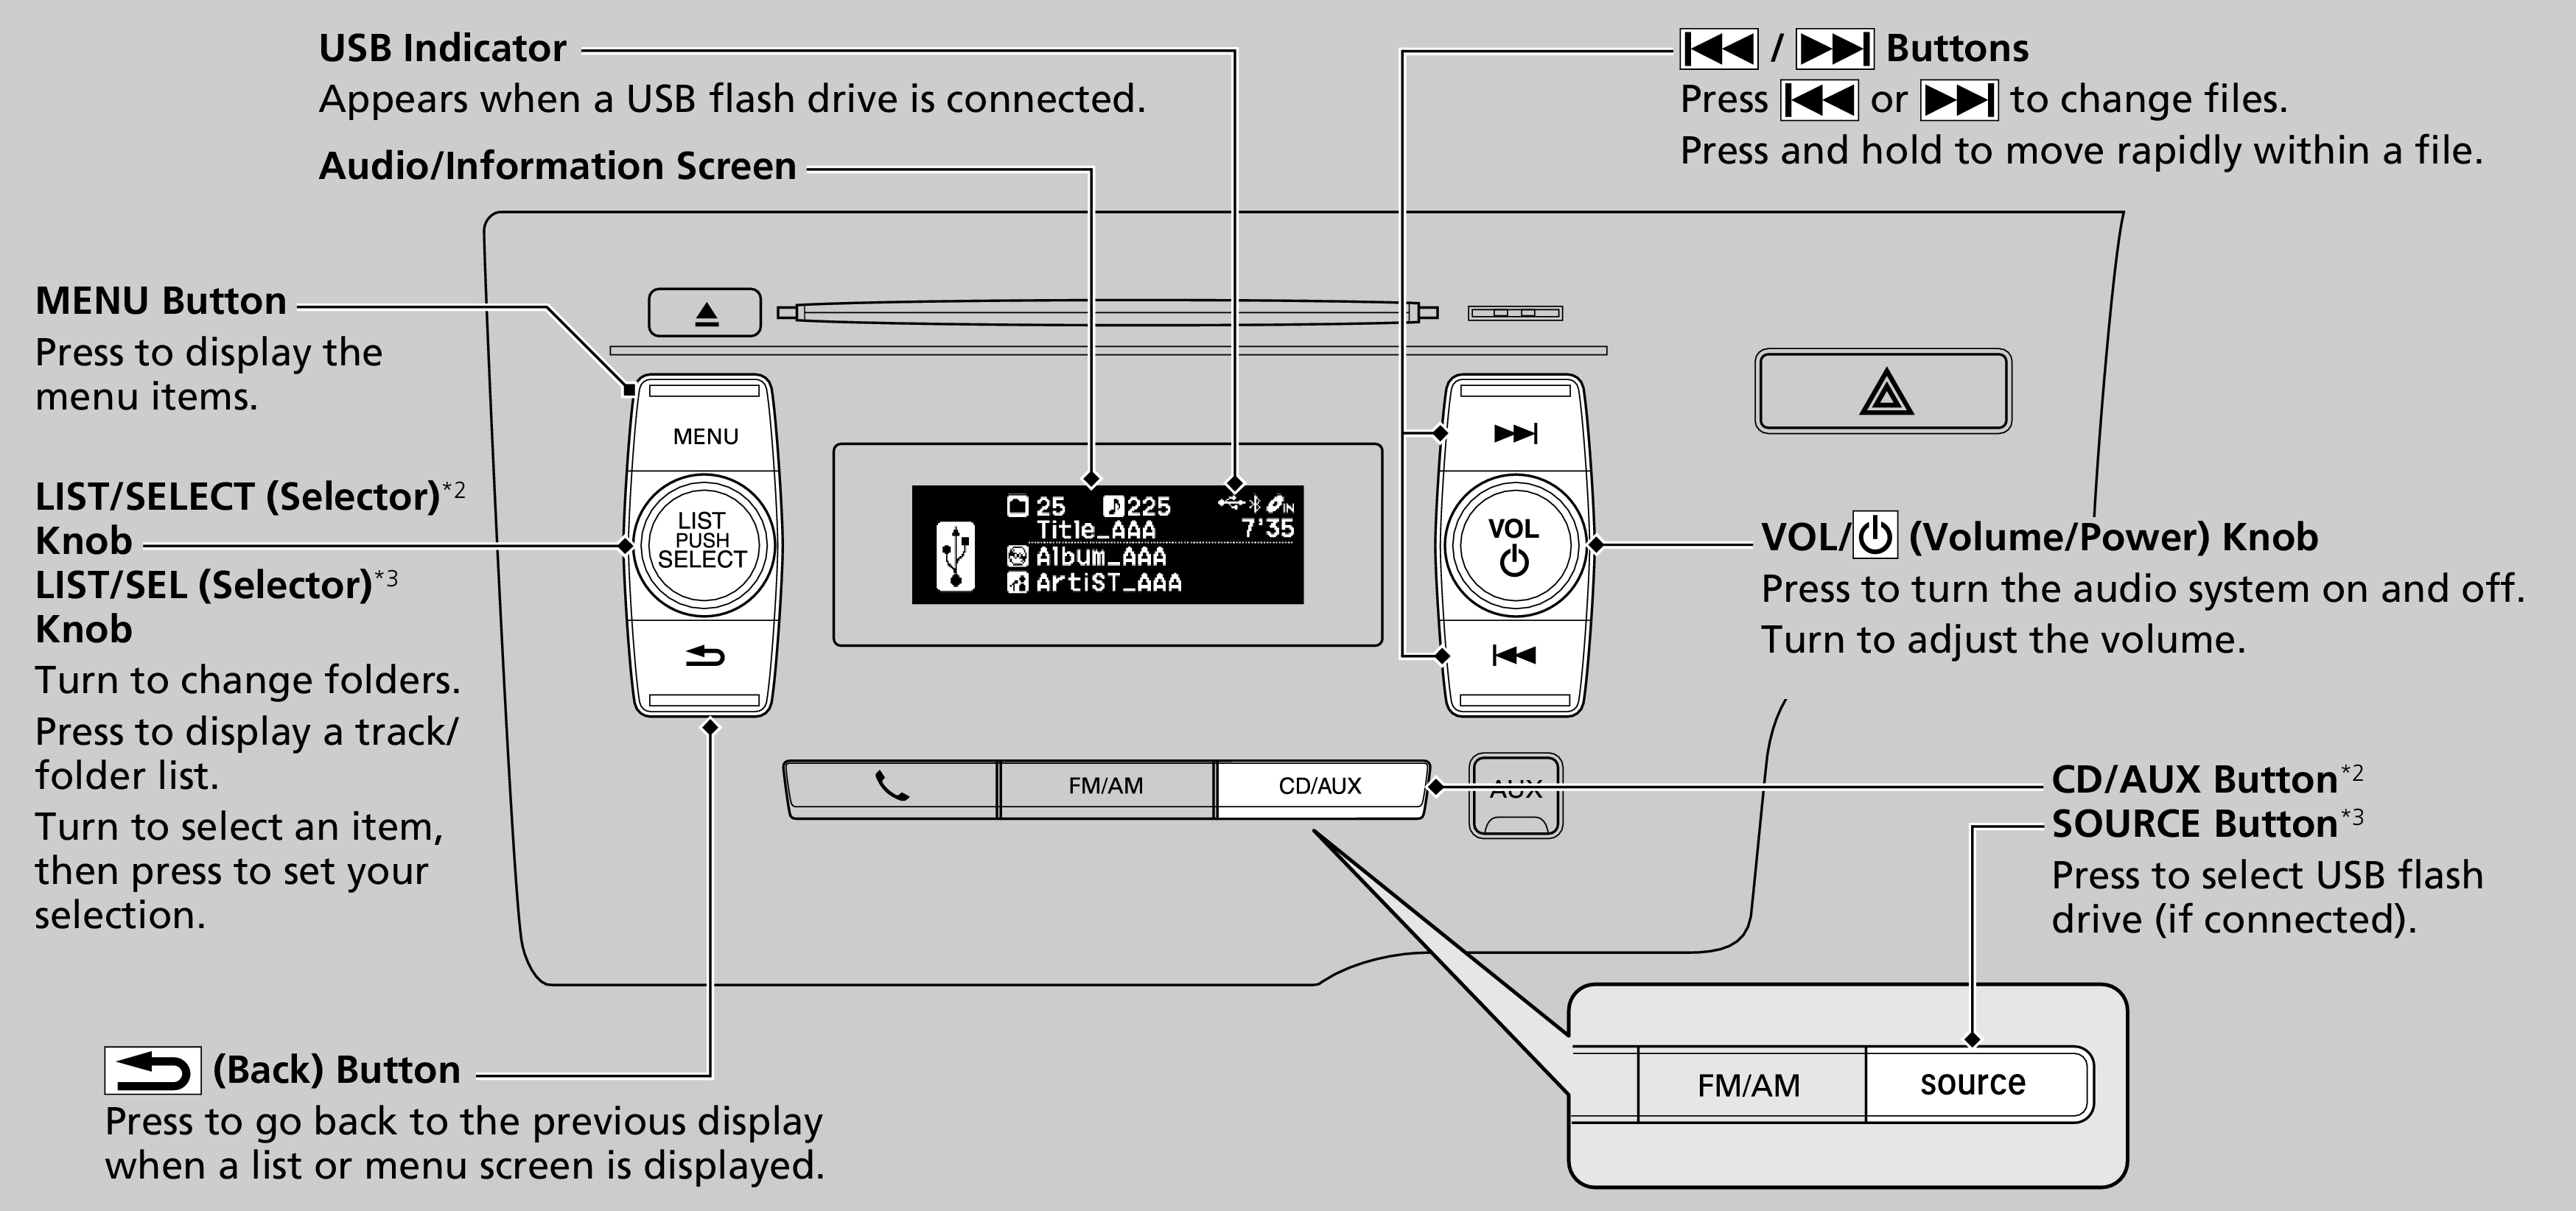 Playing a USB Flash Drive(Models with monochrome audio